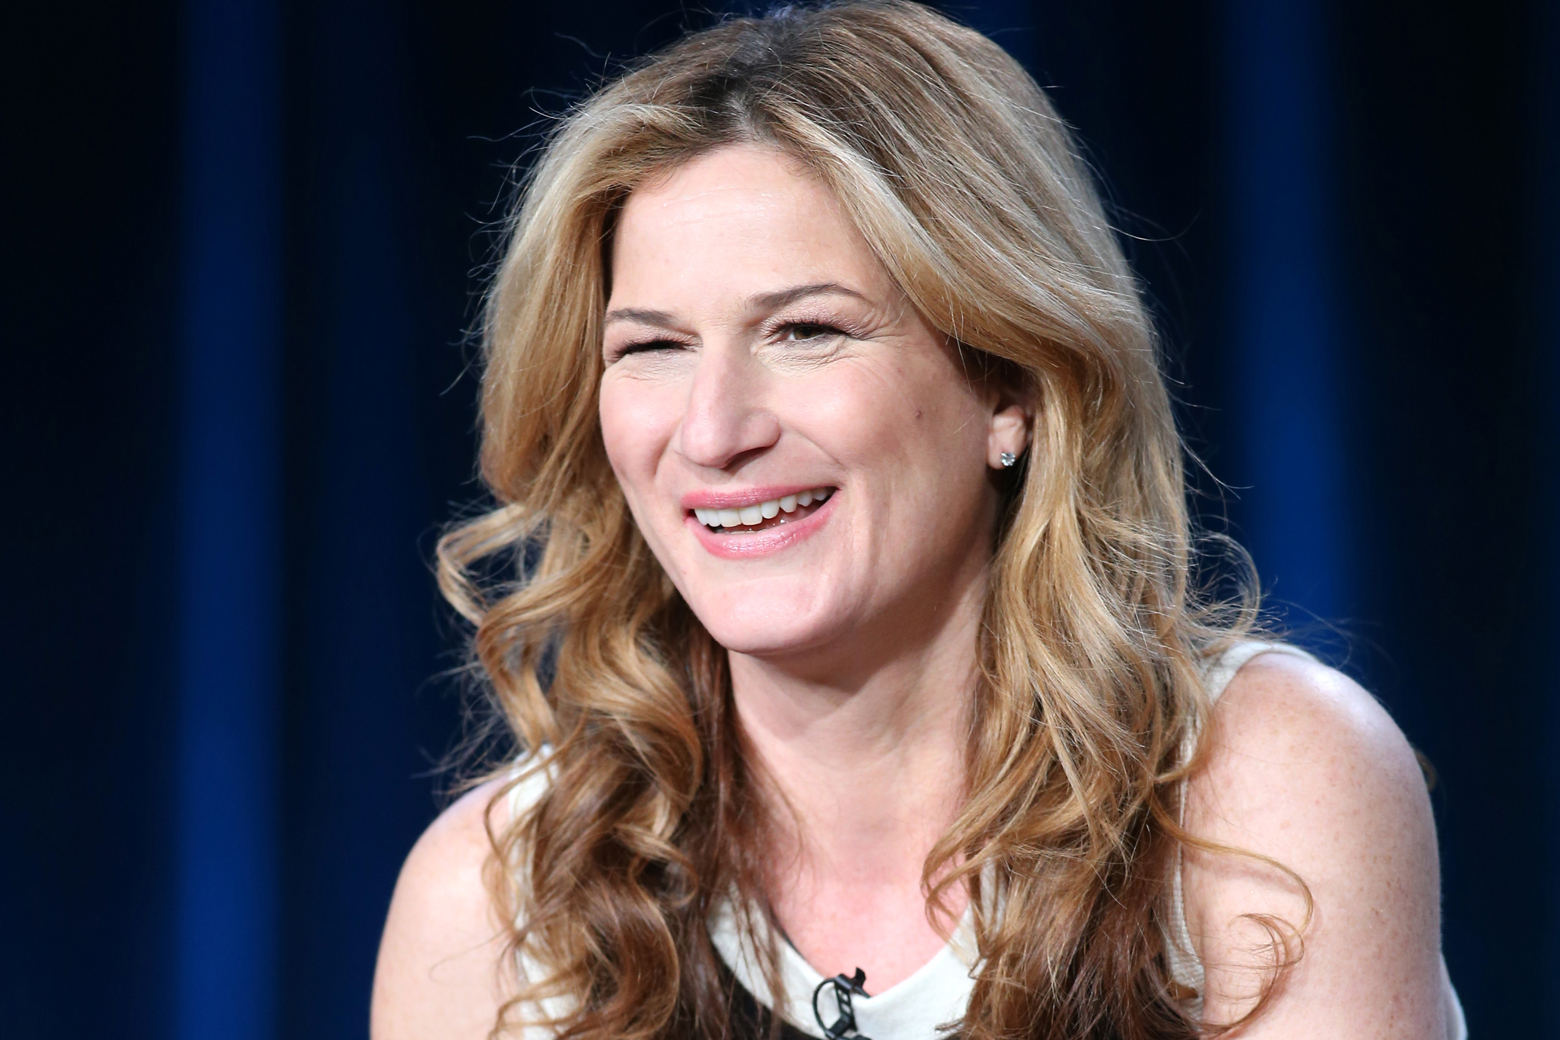 'SNL' alum Ana Gasteyer comes home to DC for Arena Stage show